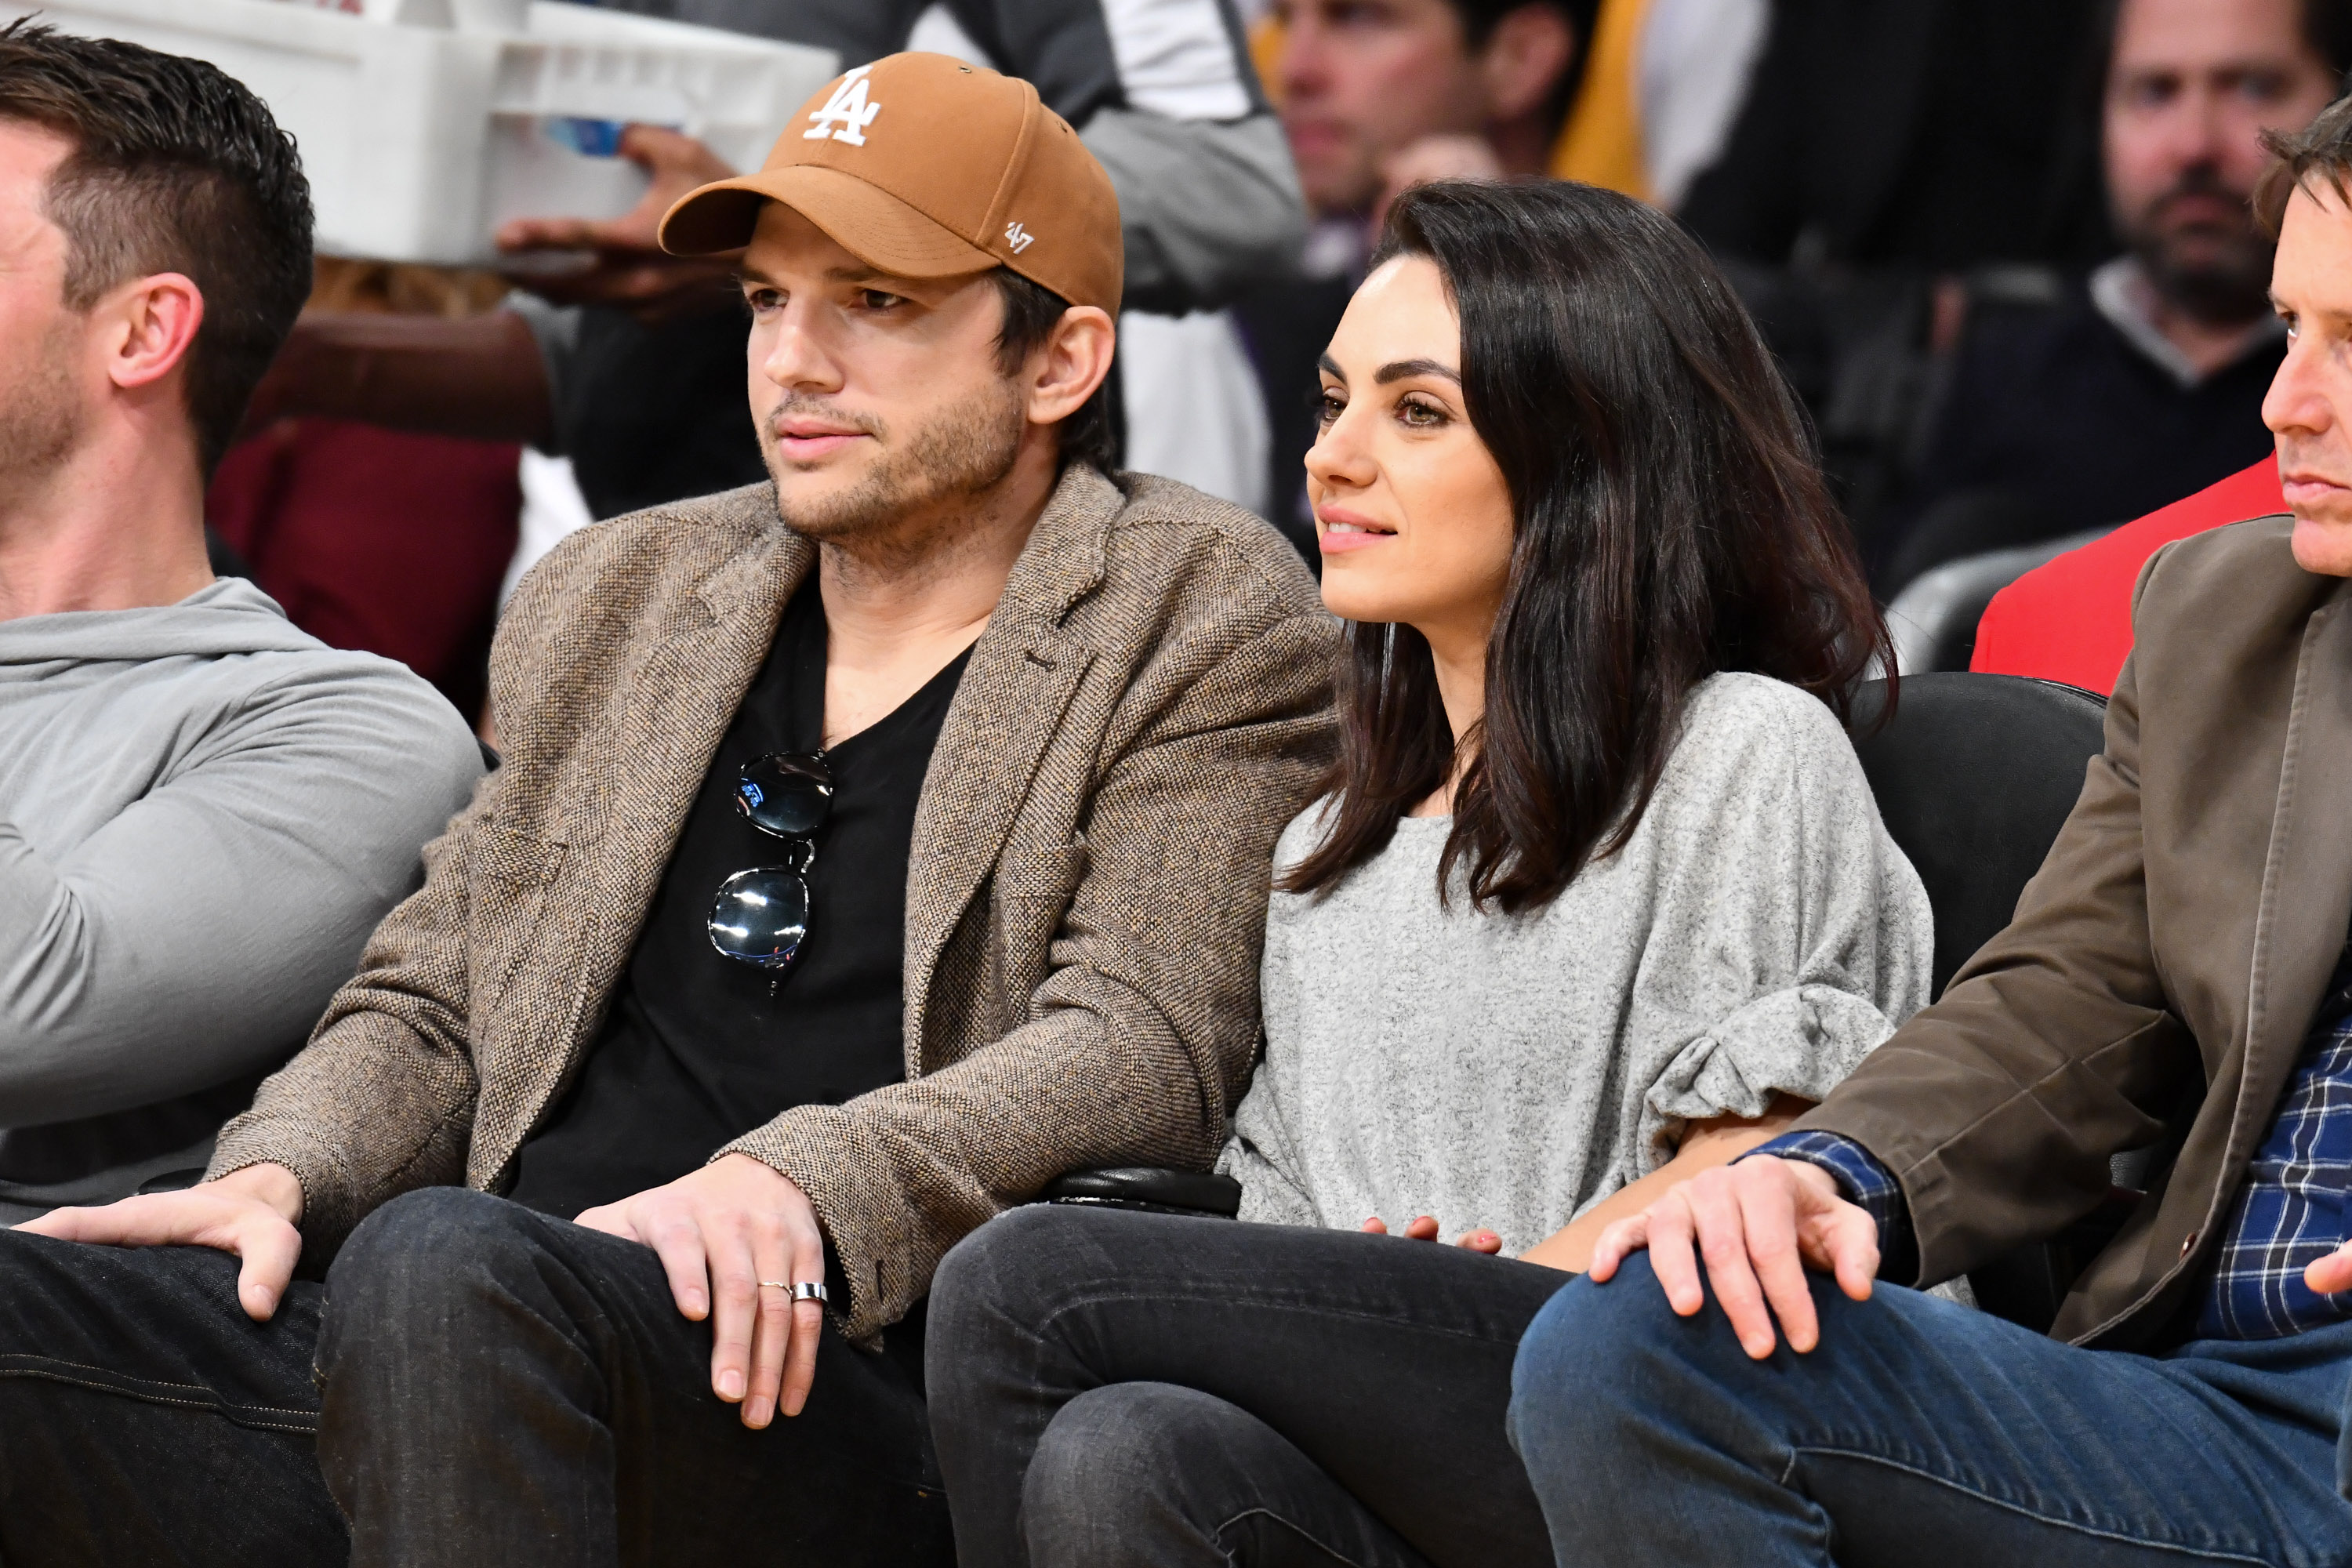 Ashton Kutcher and Mila Kunis attend a basketball game between the Los Angeles Lakers and the Philadelphia 76ers at Staples Center on January 29, 2019 in Los Angeles, California. (Photo by Allen Berezovsky/Getty Images)